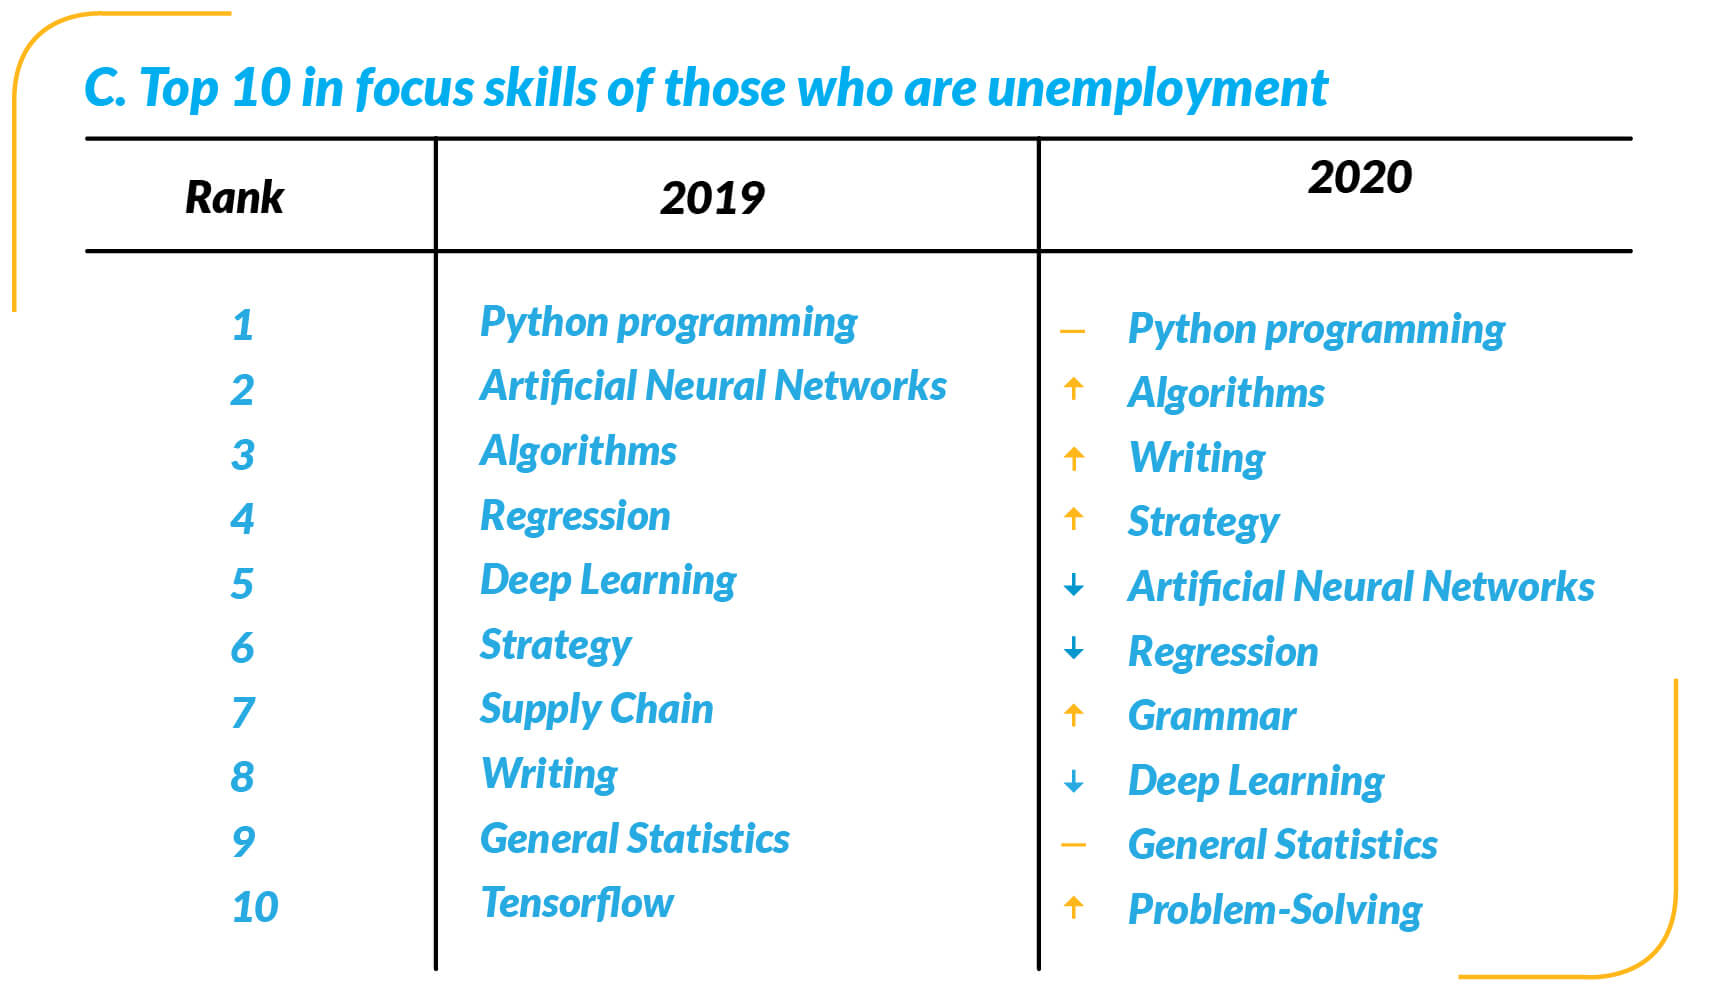 top 10 focus skills for unemployed people chart